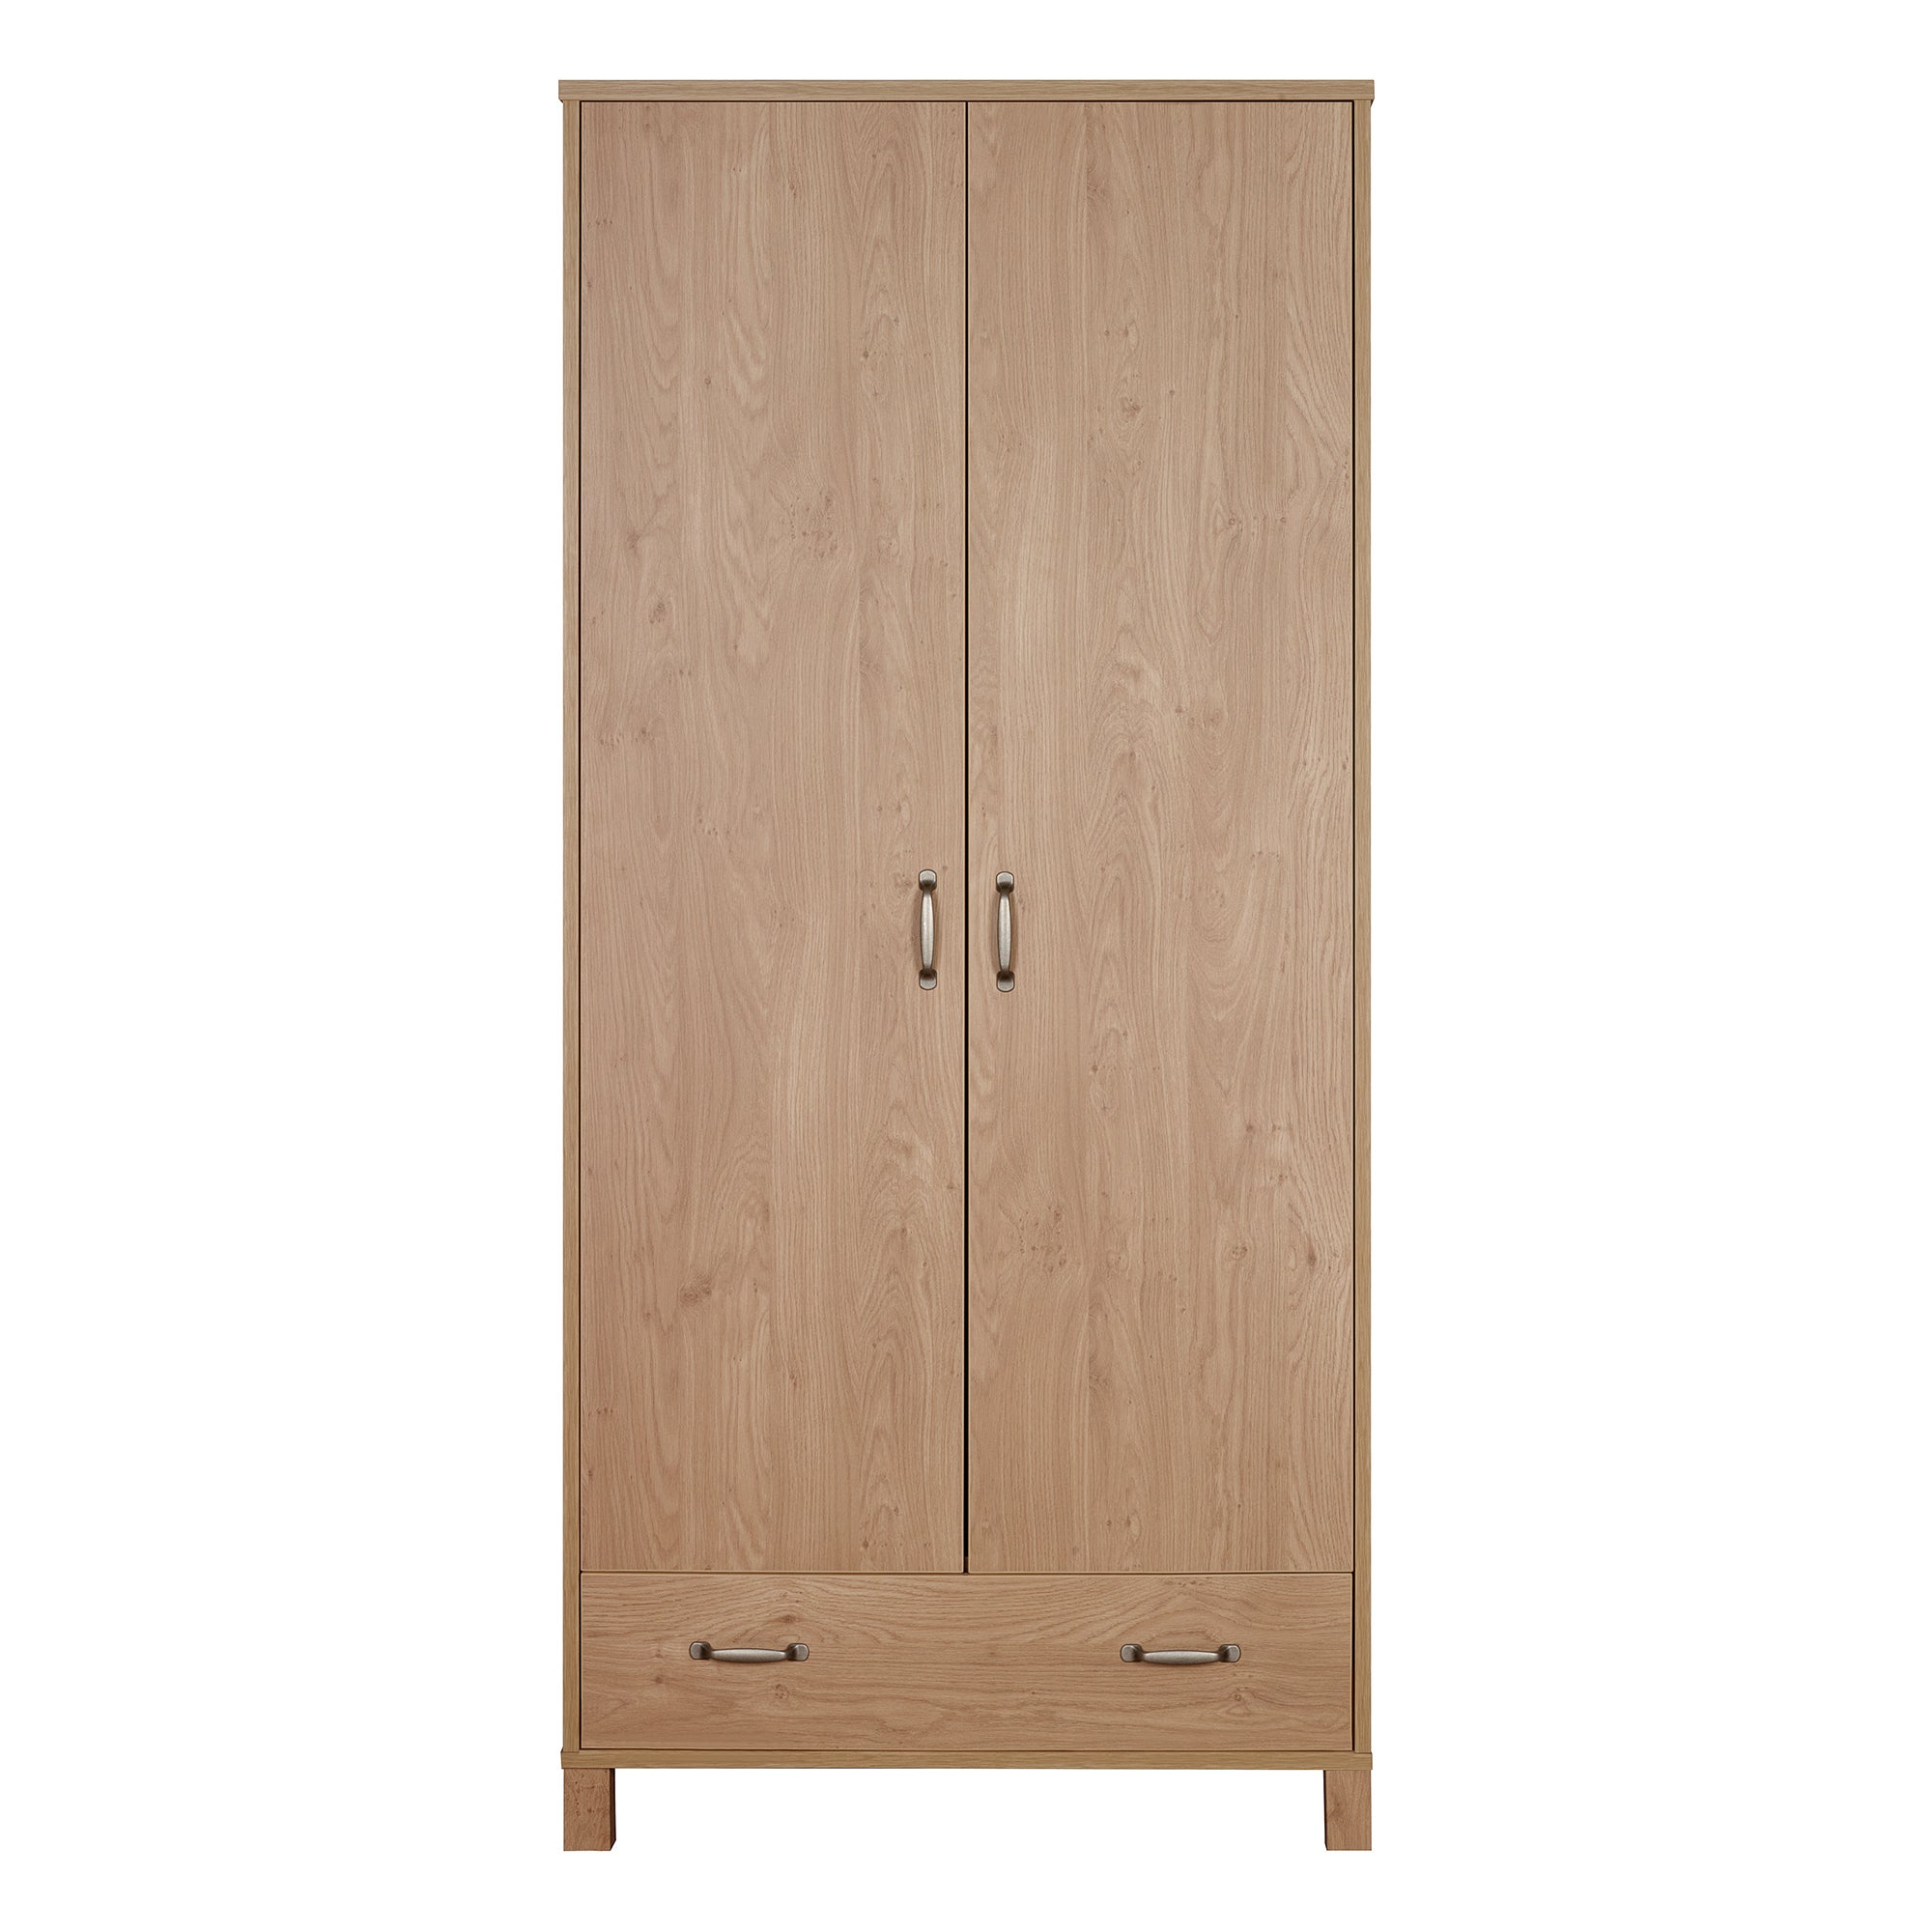 Perth Oak Wardrobe with Drawer